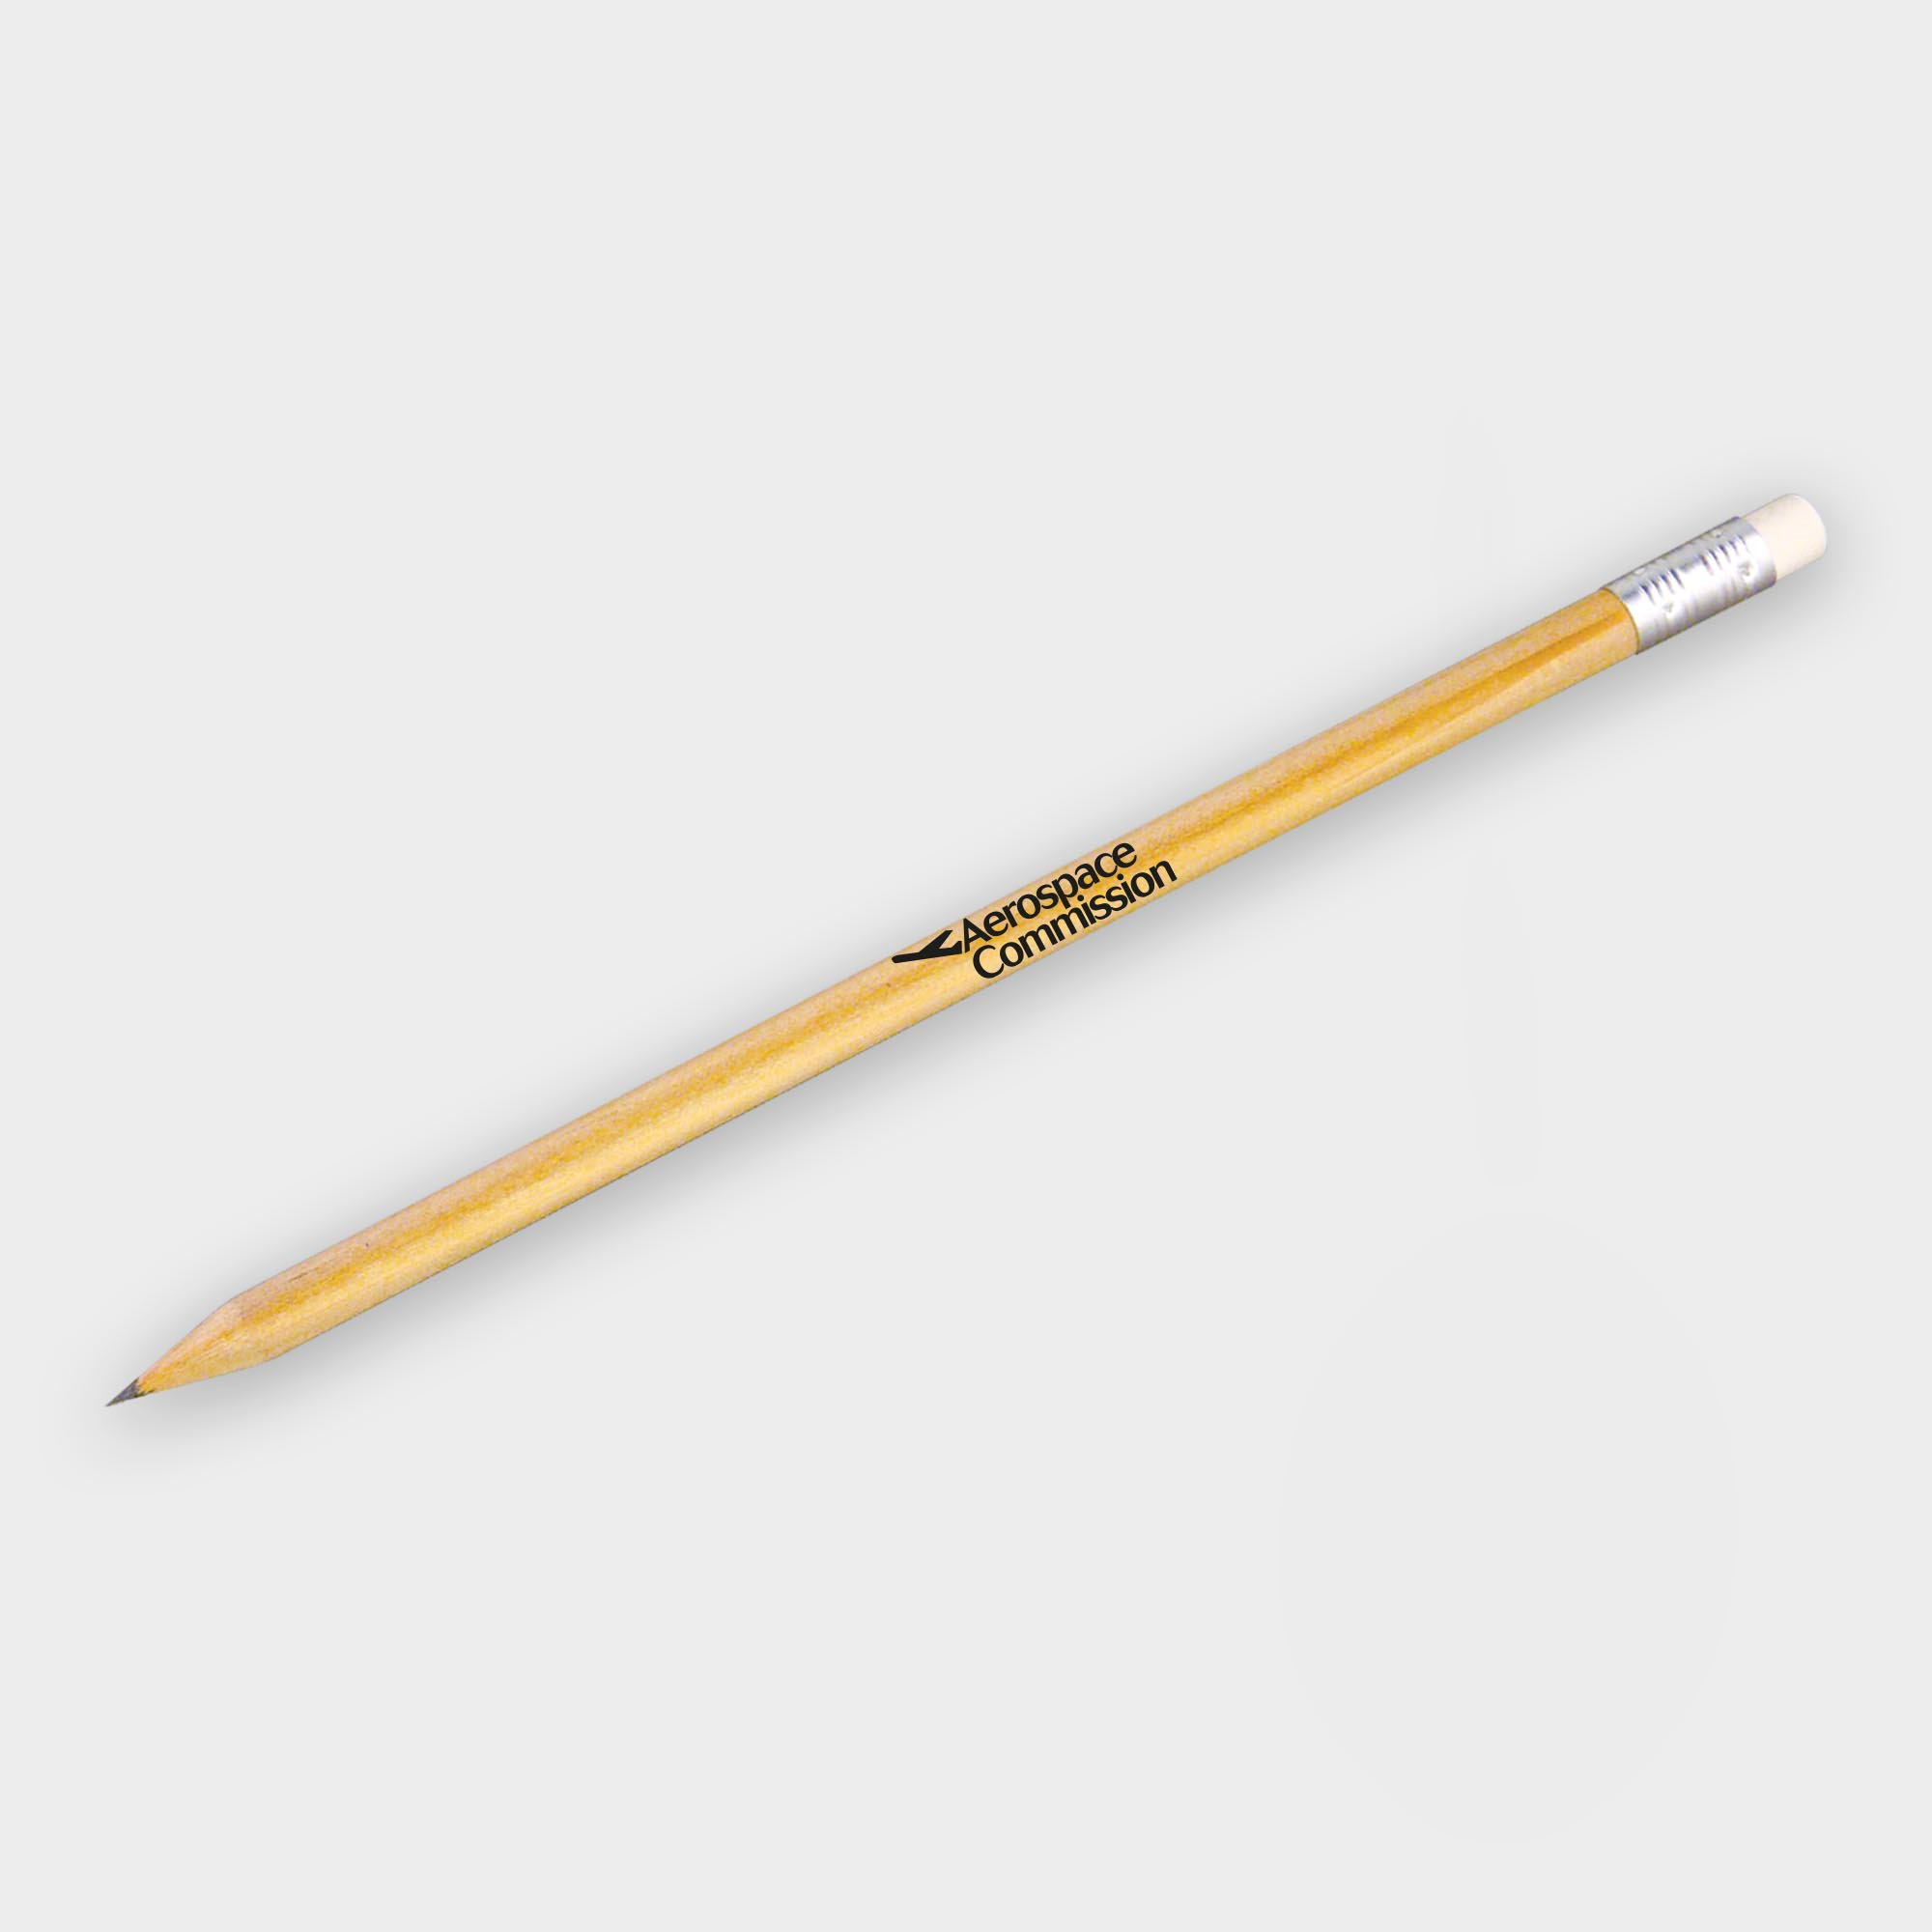 Promotional Wooden Eco Pencils with Eraser - PEFC